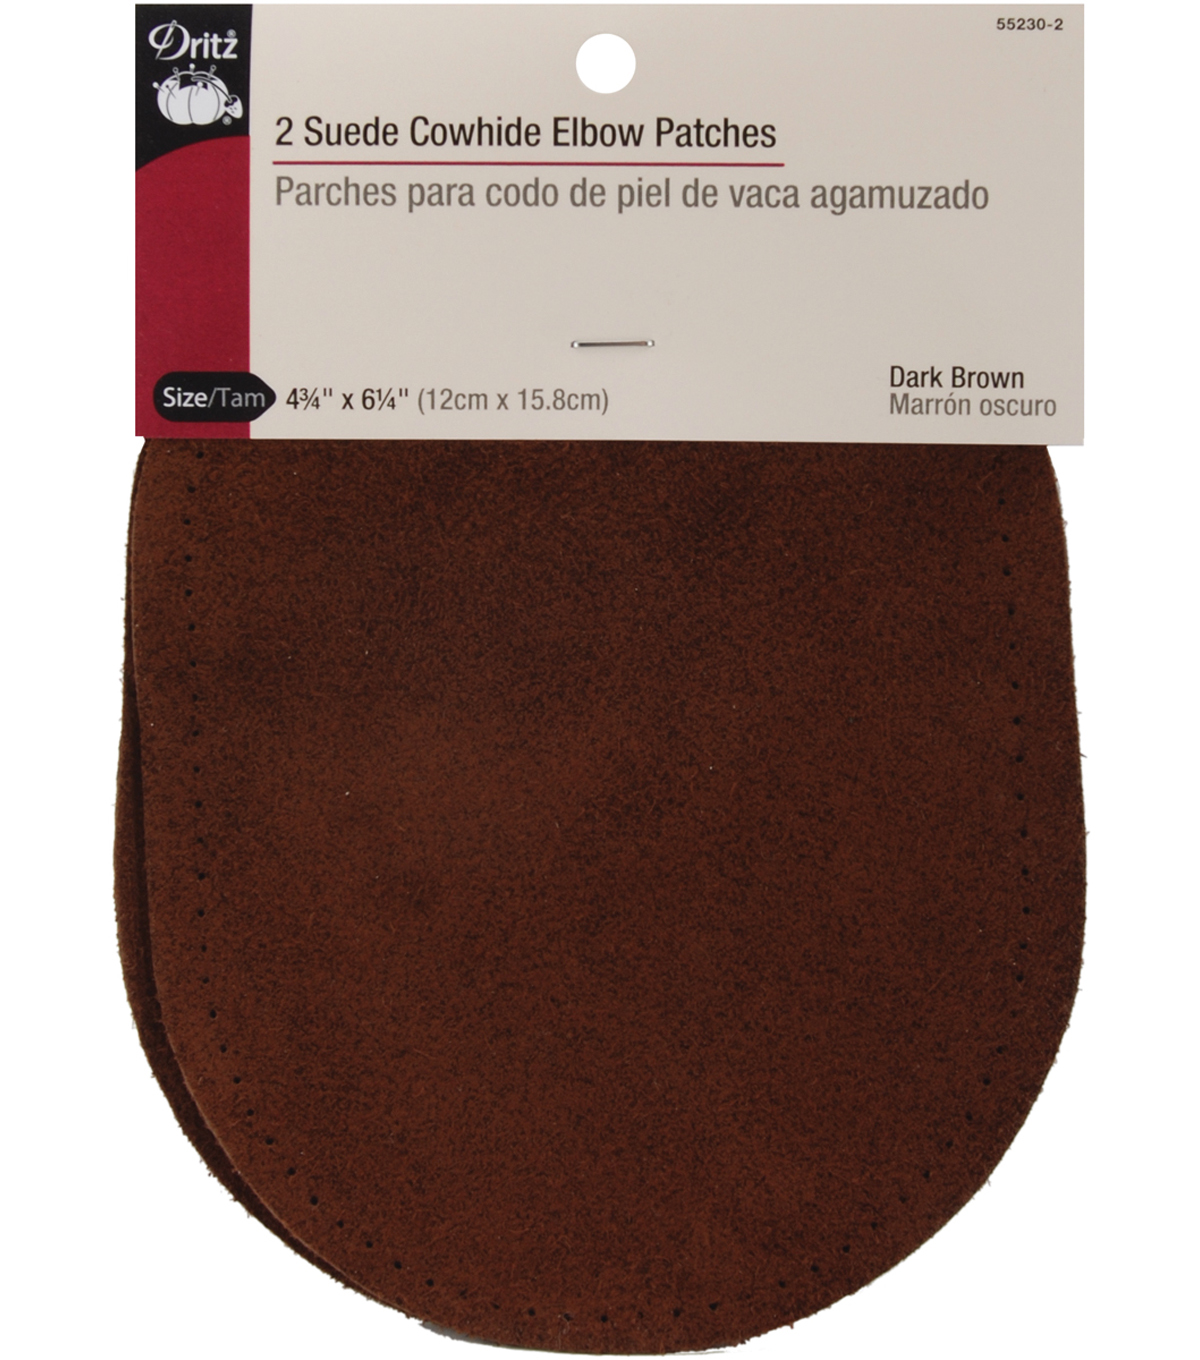 Dritz 4 75 X6 5 Suede Cowhide Elbow Patches